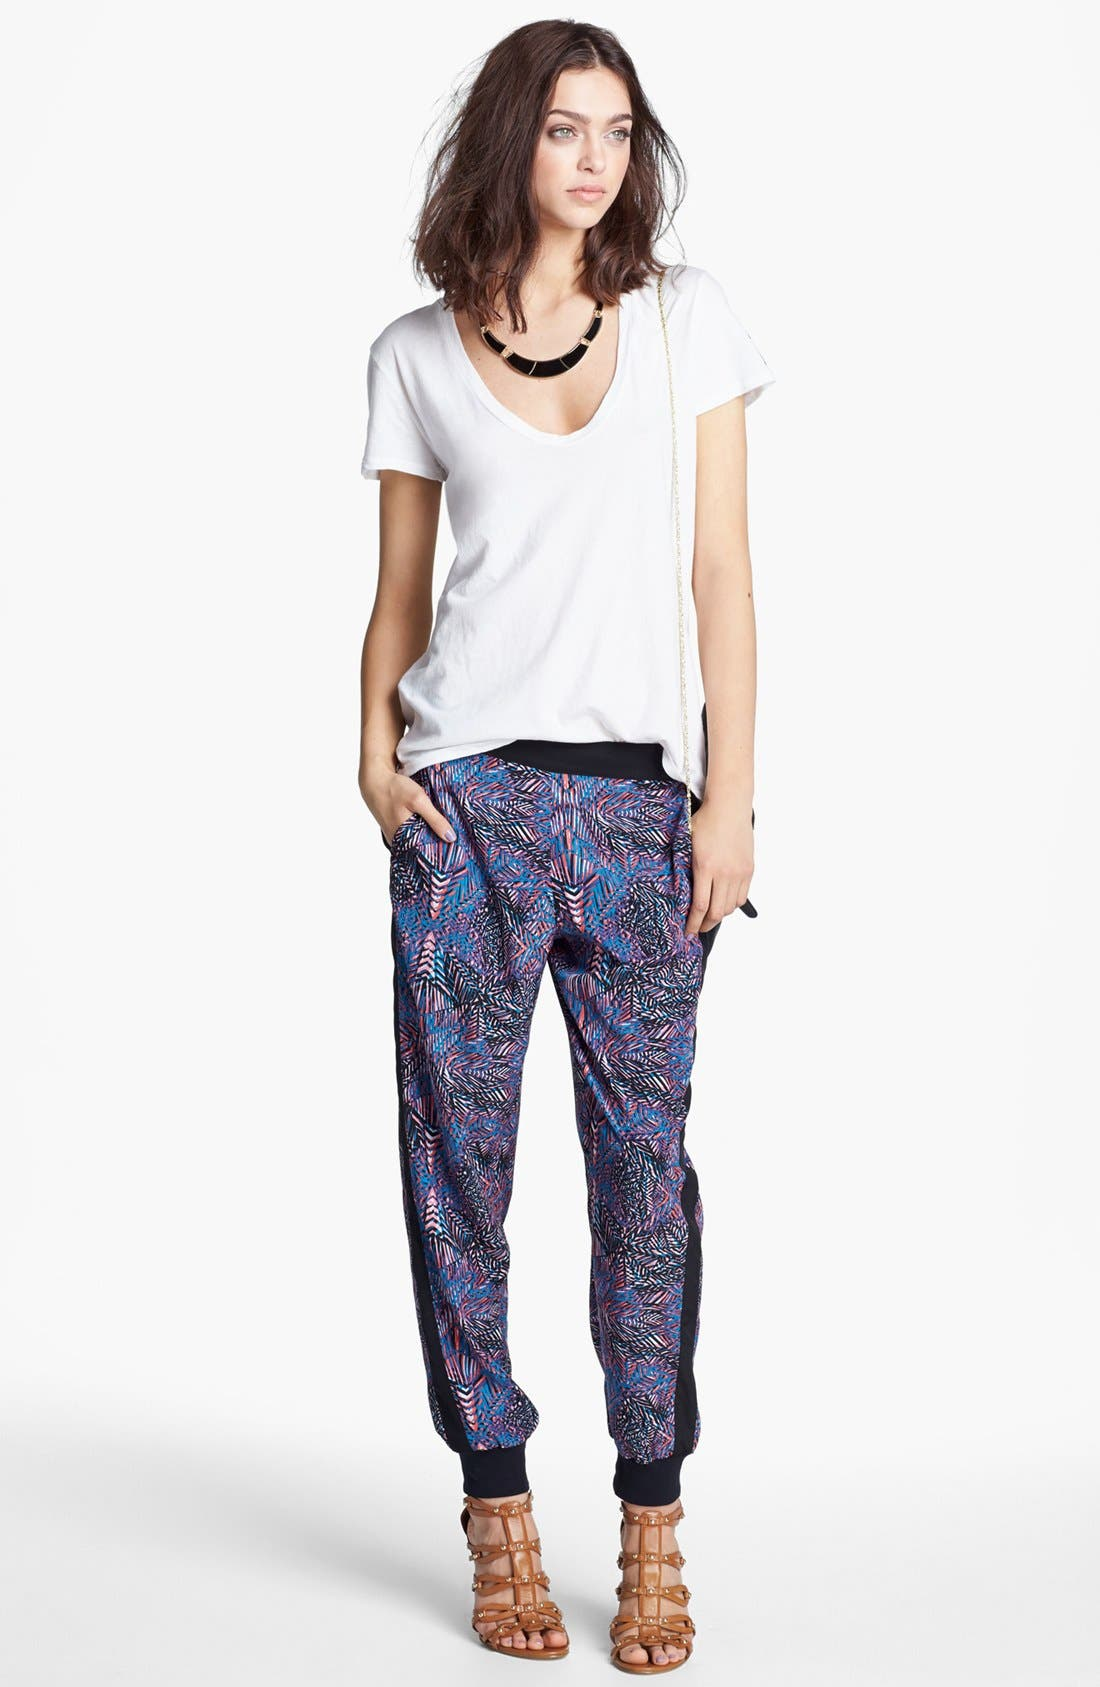 Alternate Image 1 Selected - James Perse Tee & Trouvé Pants